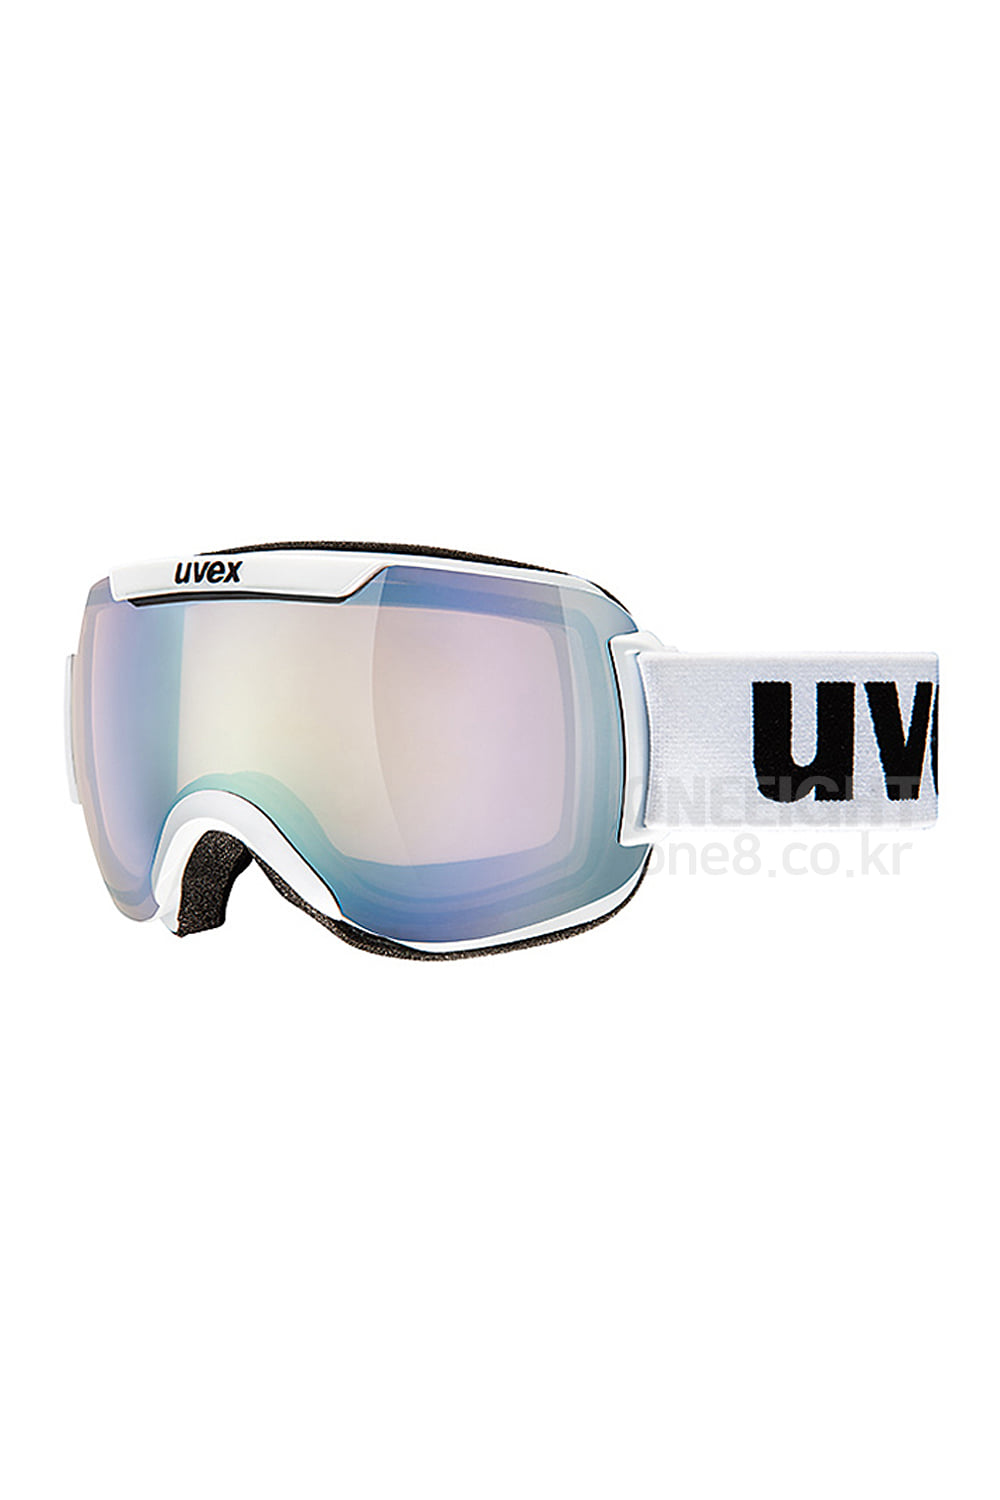 우벡스고글 다운힐 2000 VLM 아시안핏 UVEX_(04) DOWNHILL 2000 VLM-ASIAN FIT_WHITE/LITEMIRROR SILVER, VARIOMATIC-S1-S3_아시안핏/주간용/변색렌즈_DBUV804WH